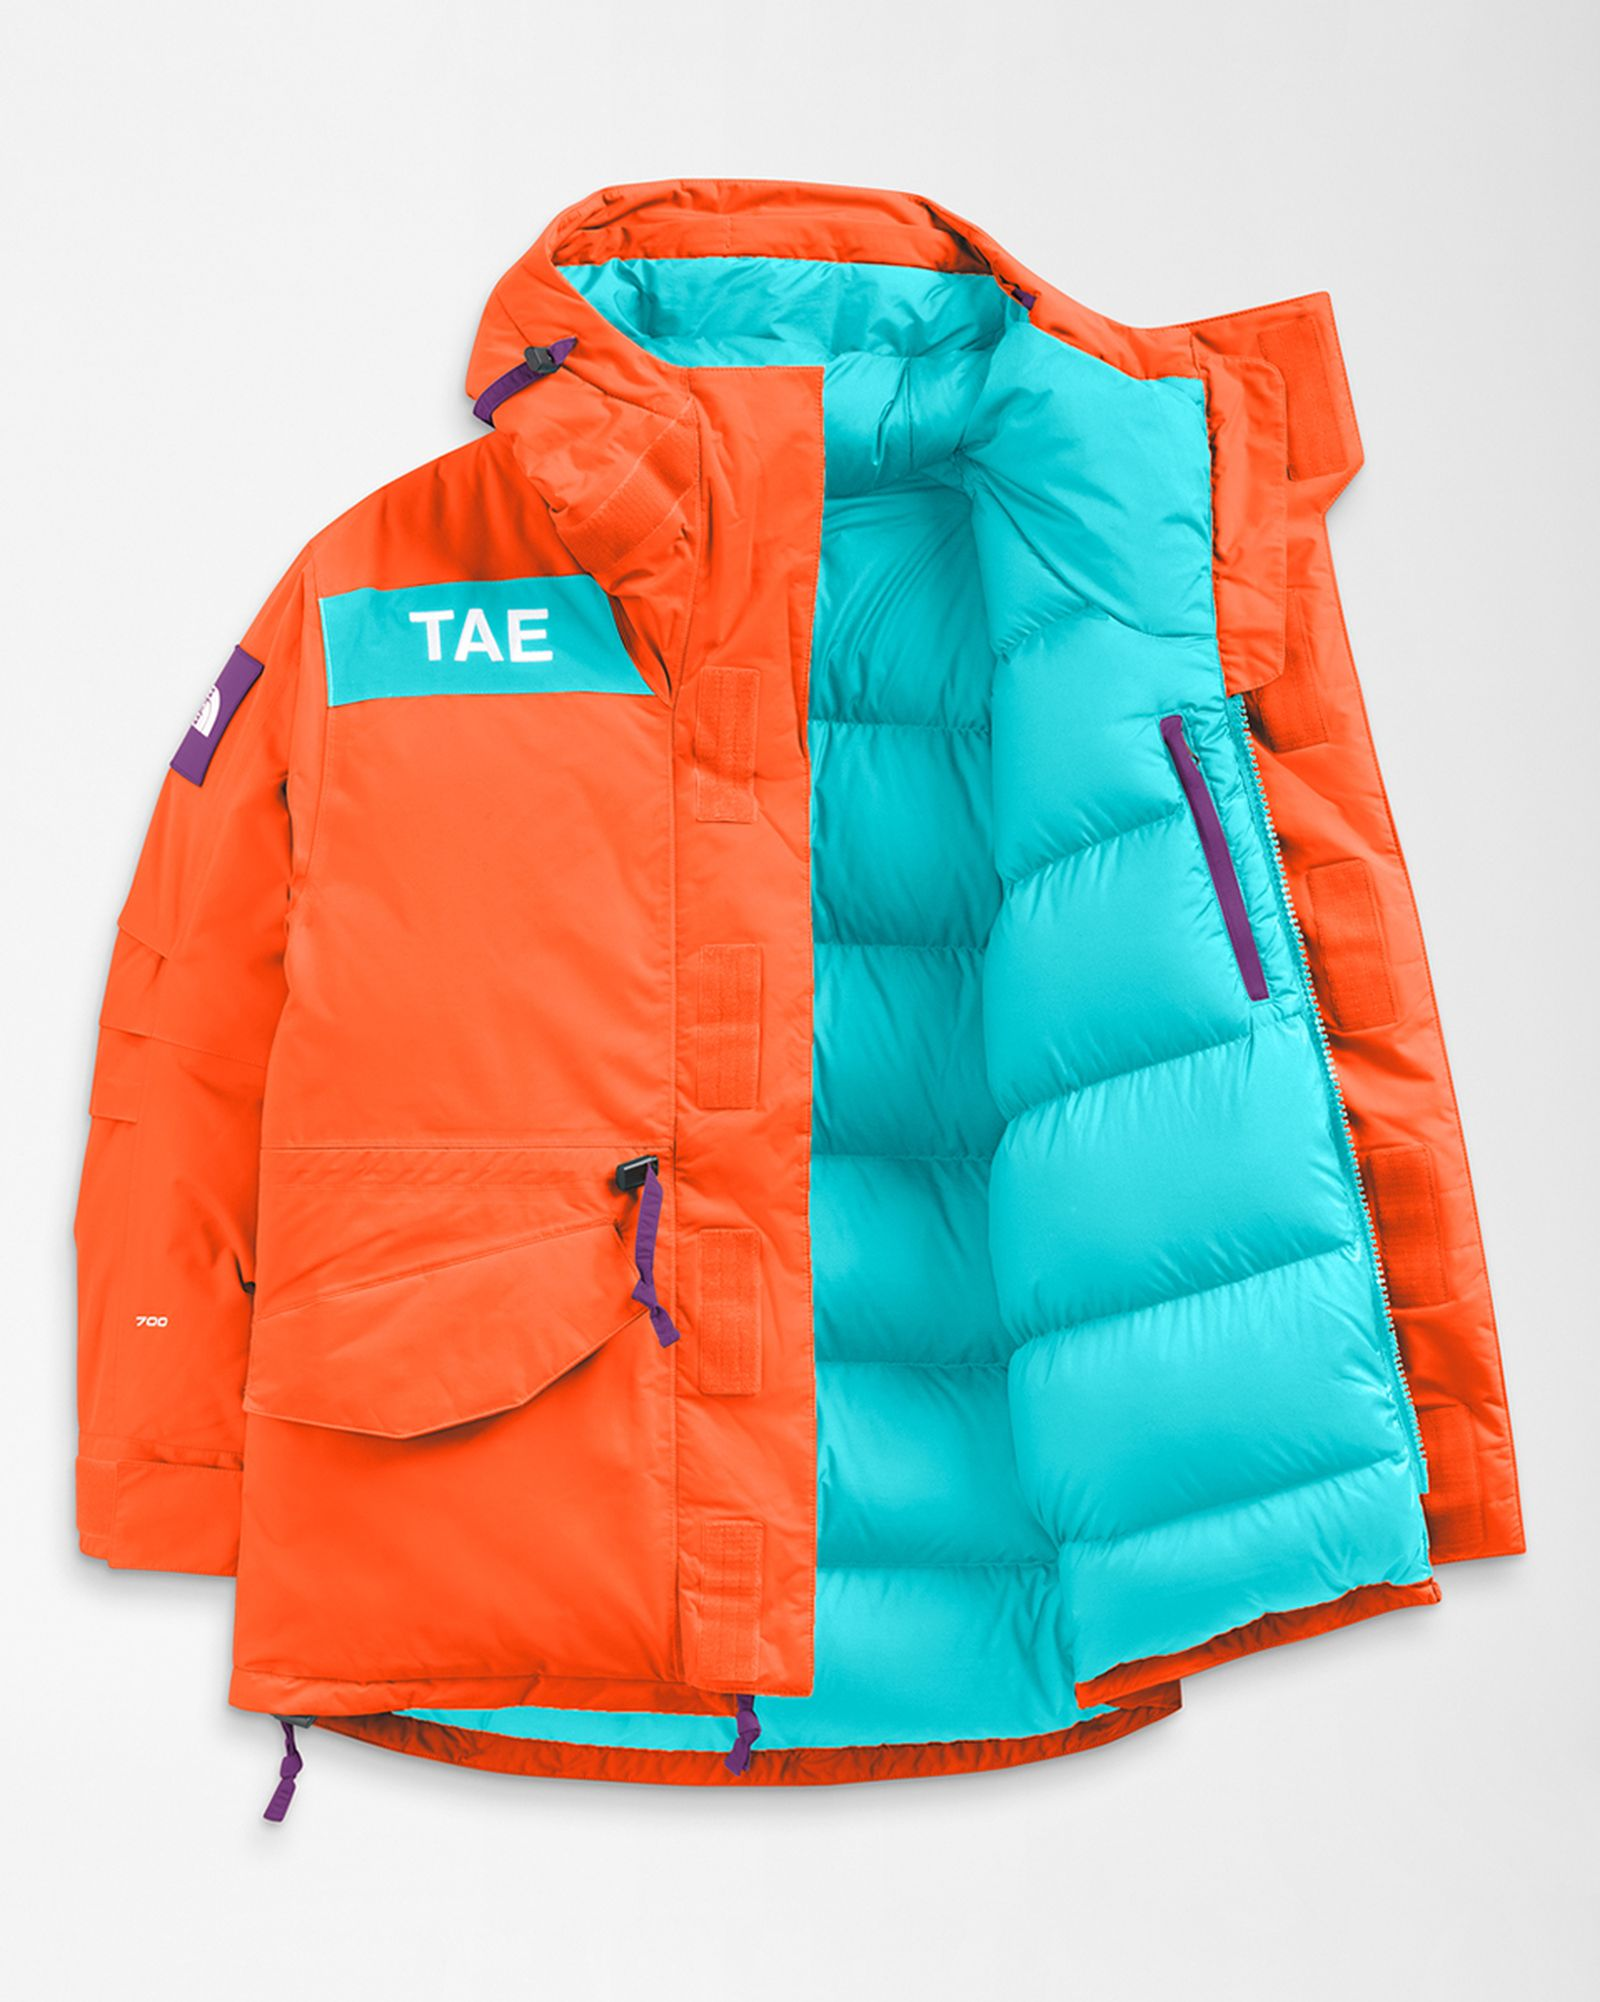 the-north-face-trans-antarctica-collection (13)